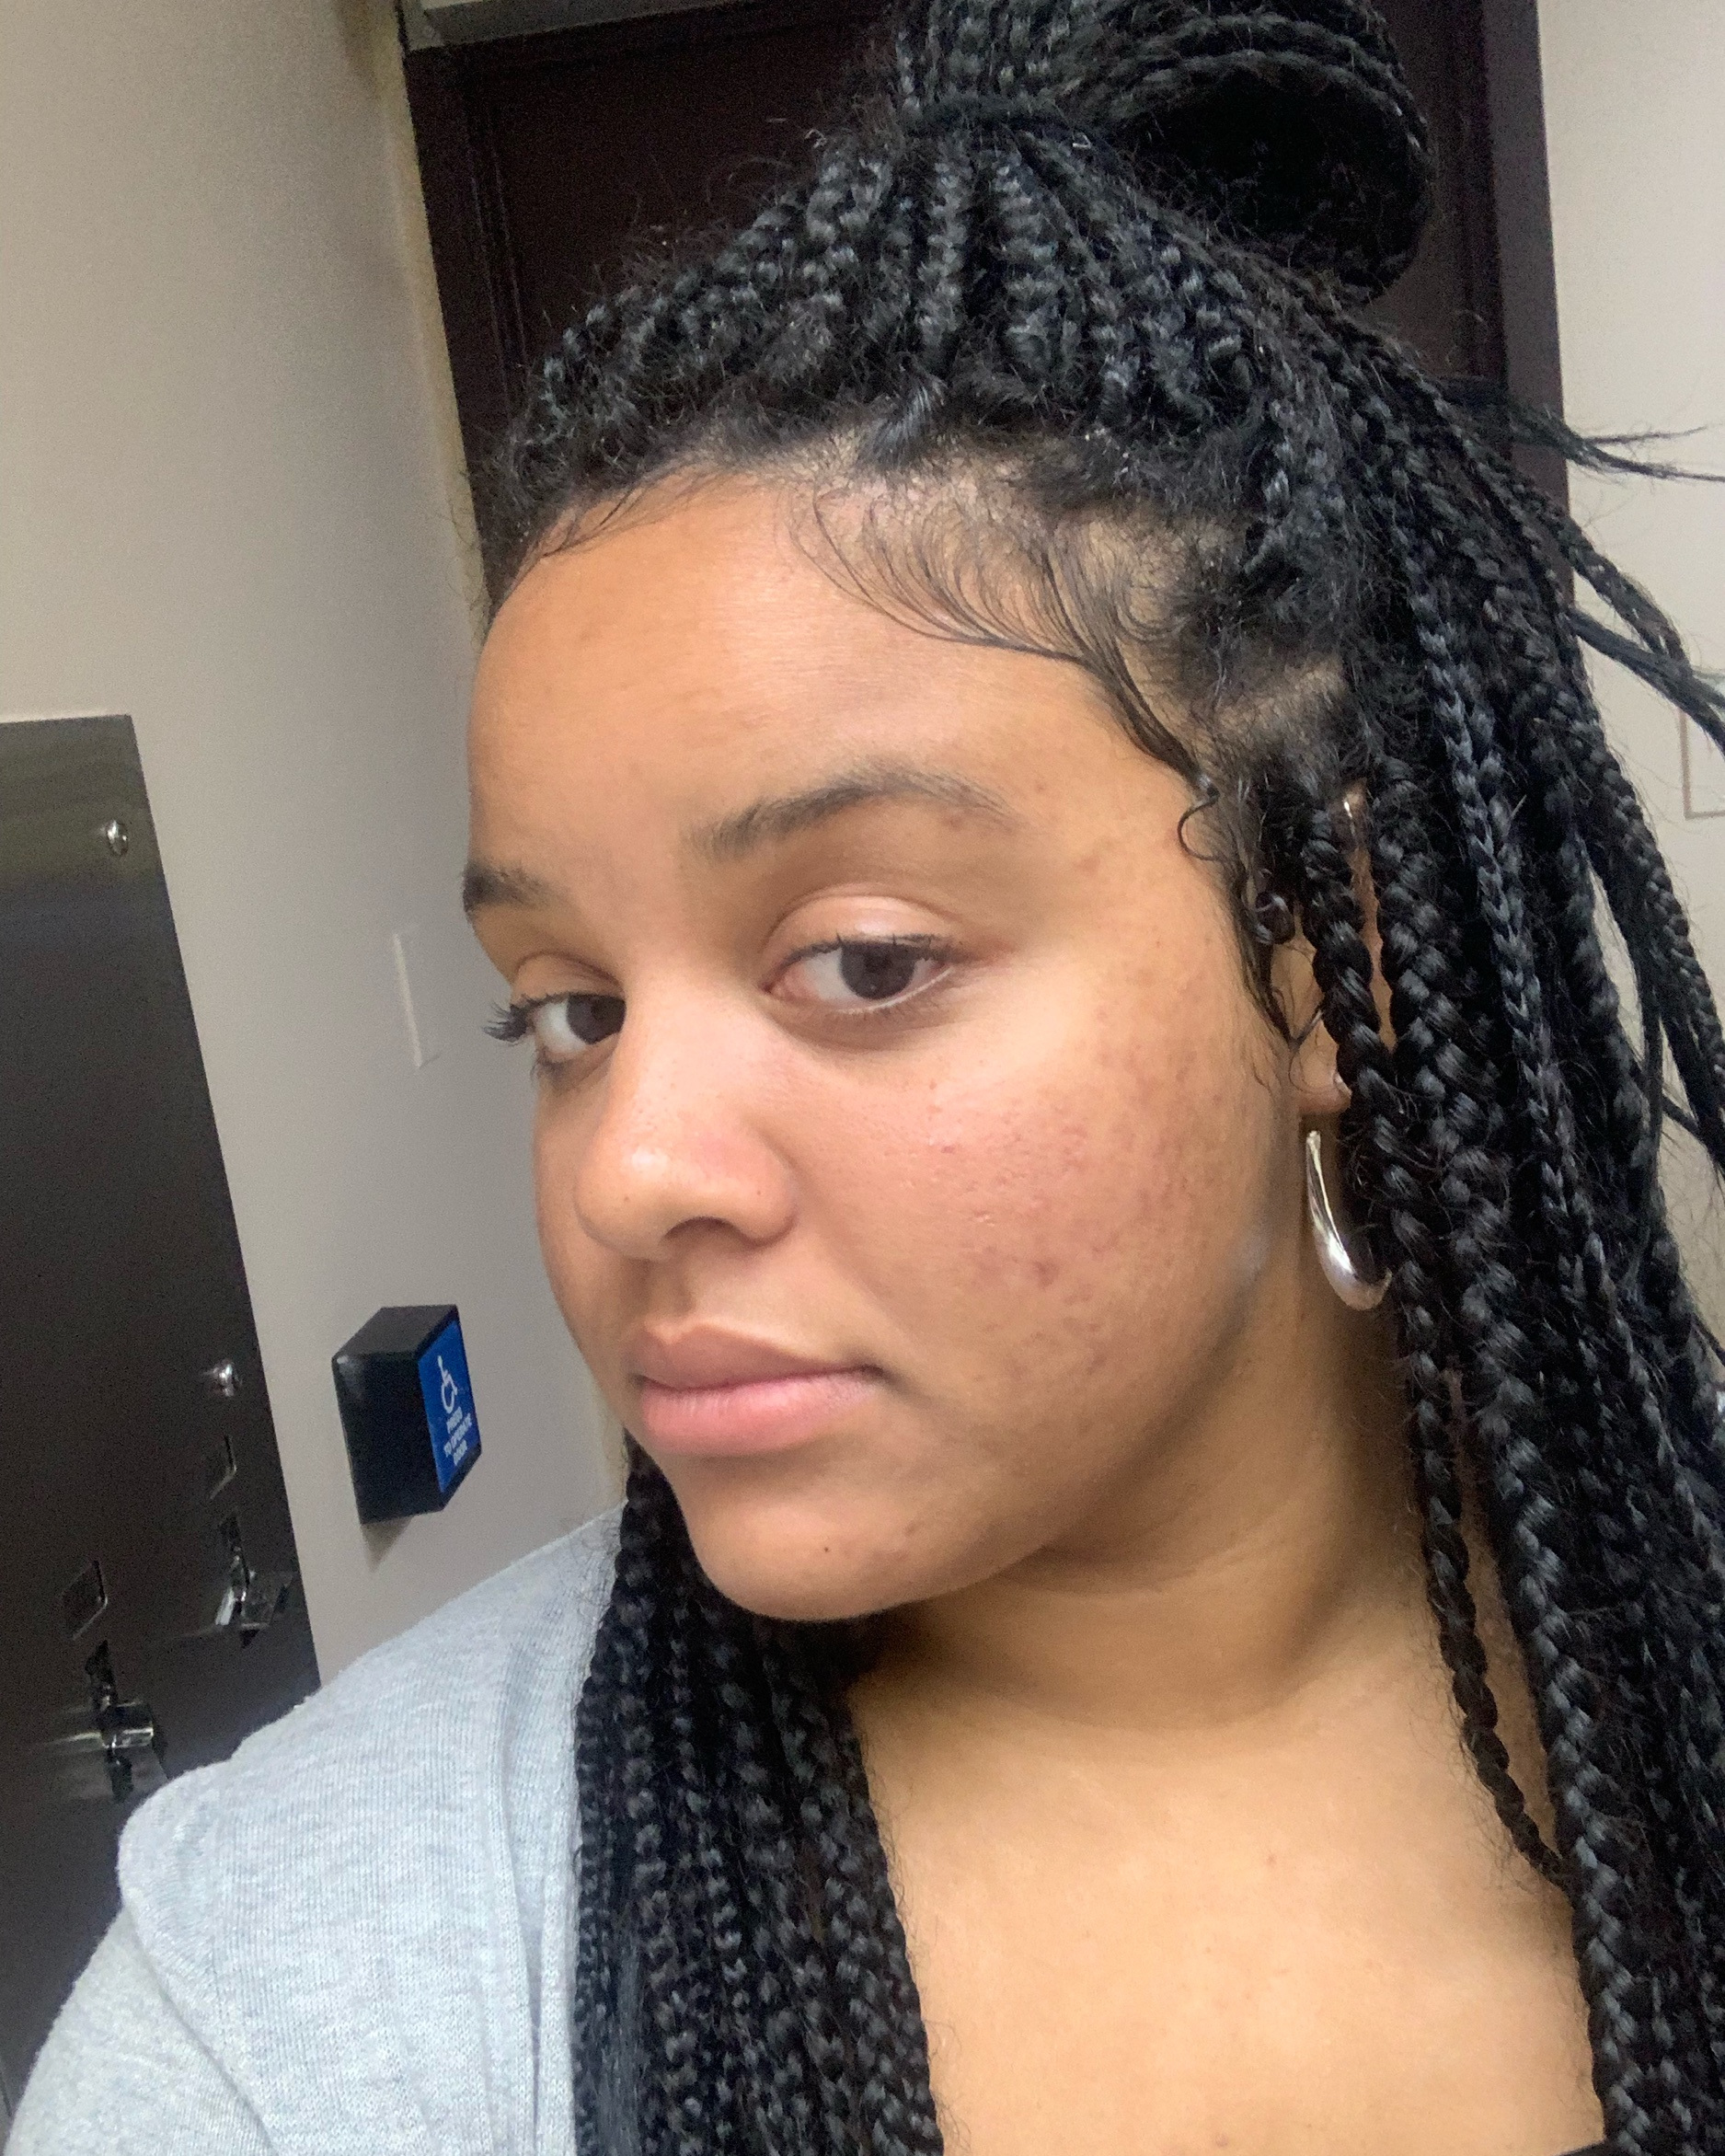 Box Braids On Biracial Hair I Have Alot To Say